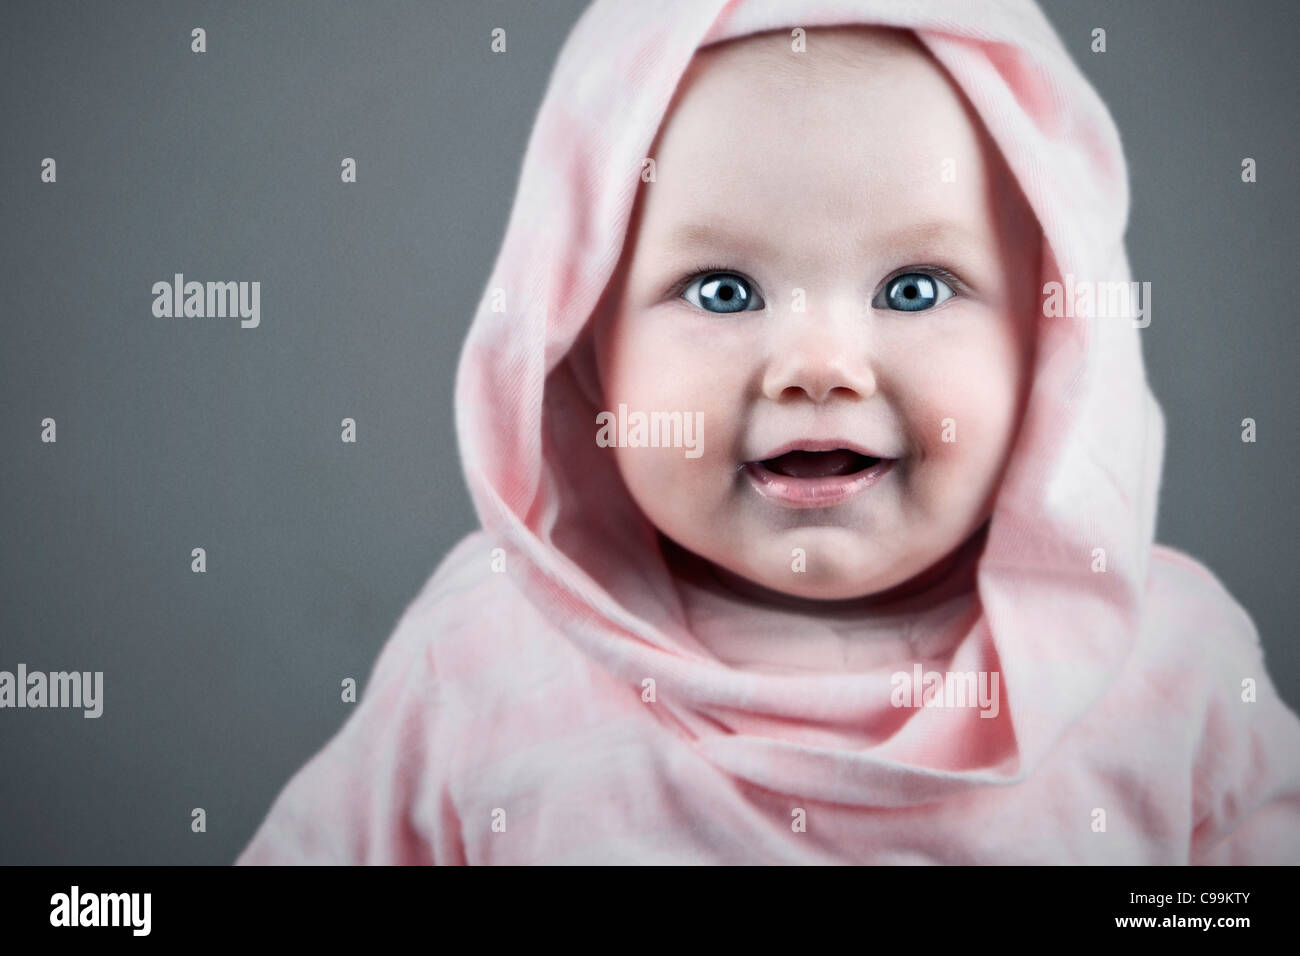 Shot of a Beautiful Baby Girl in Pink Hooded Top - Stock Image